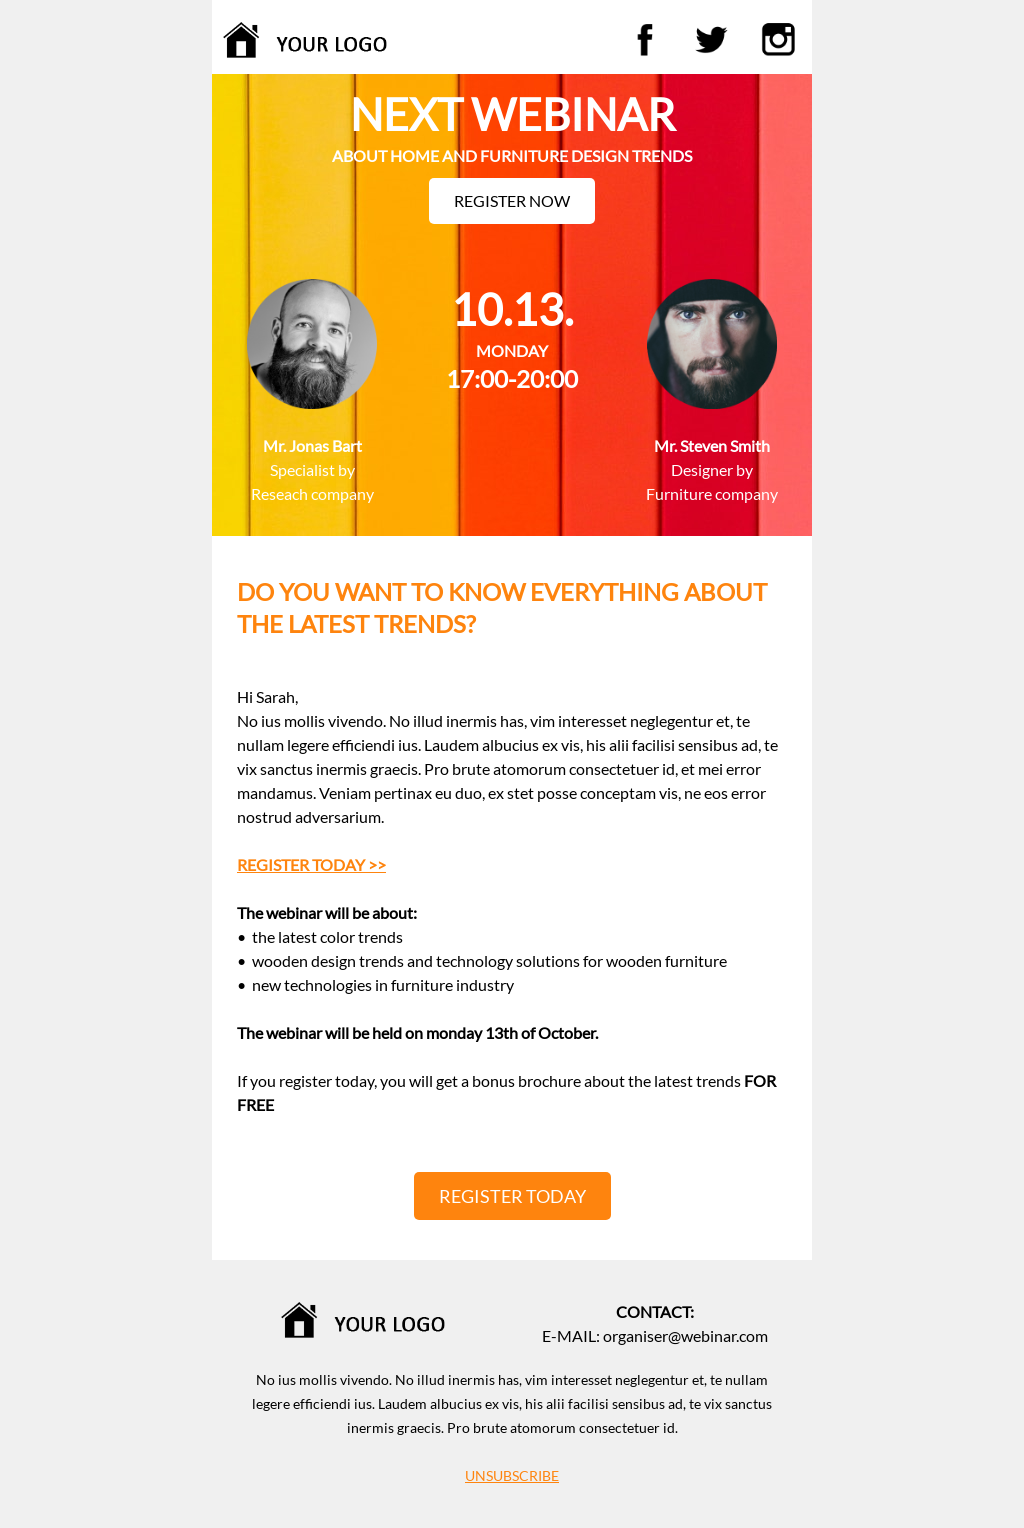 Responsive webinar template for any industry